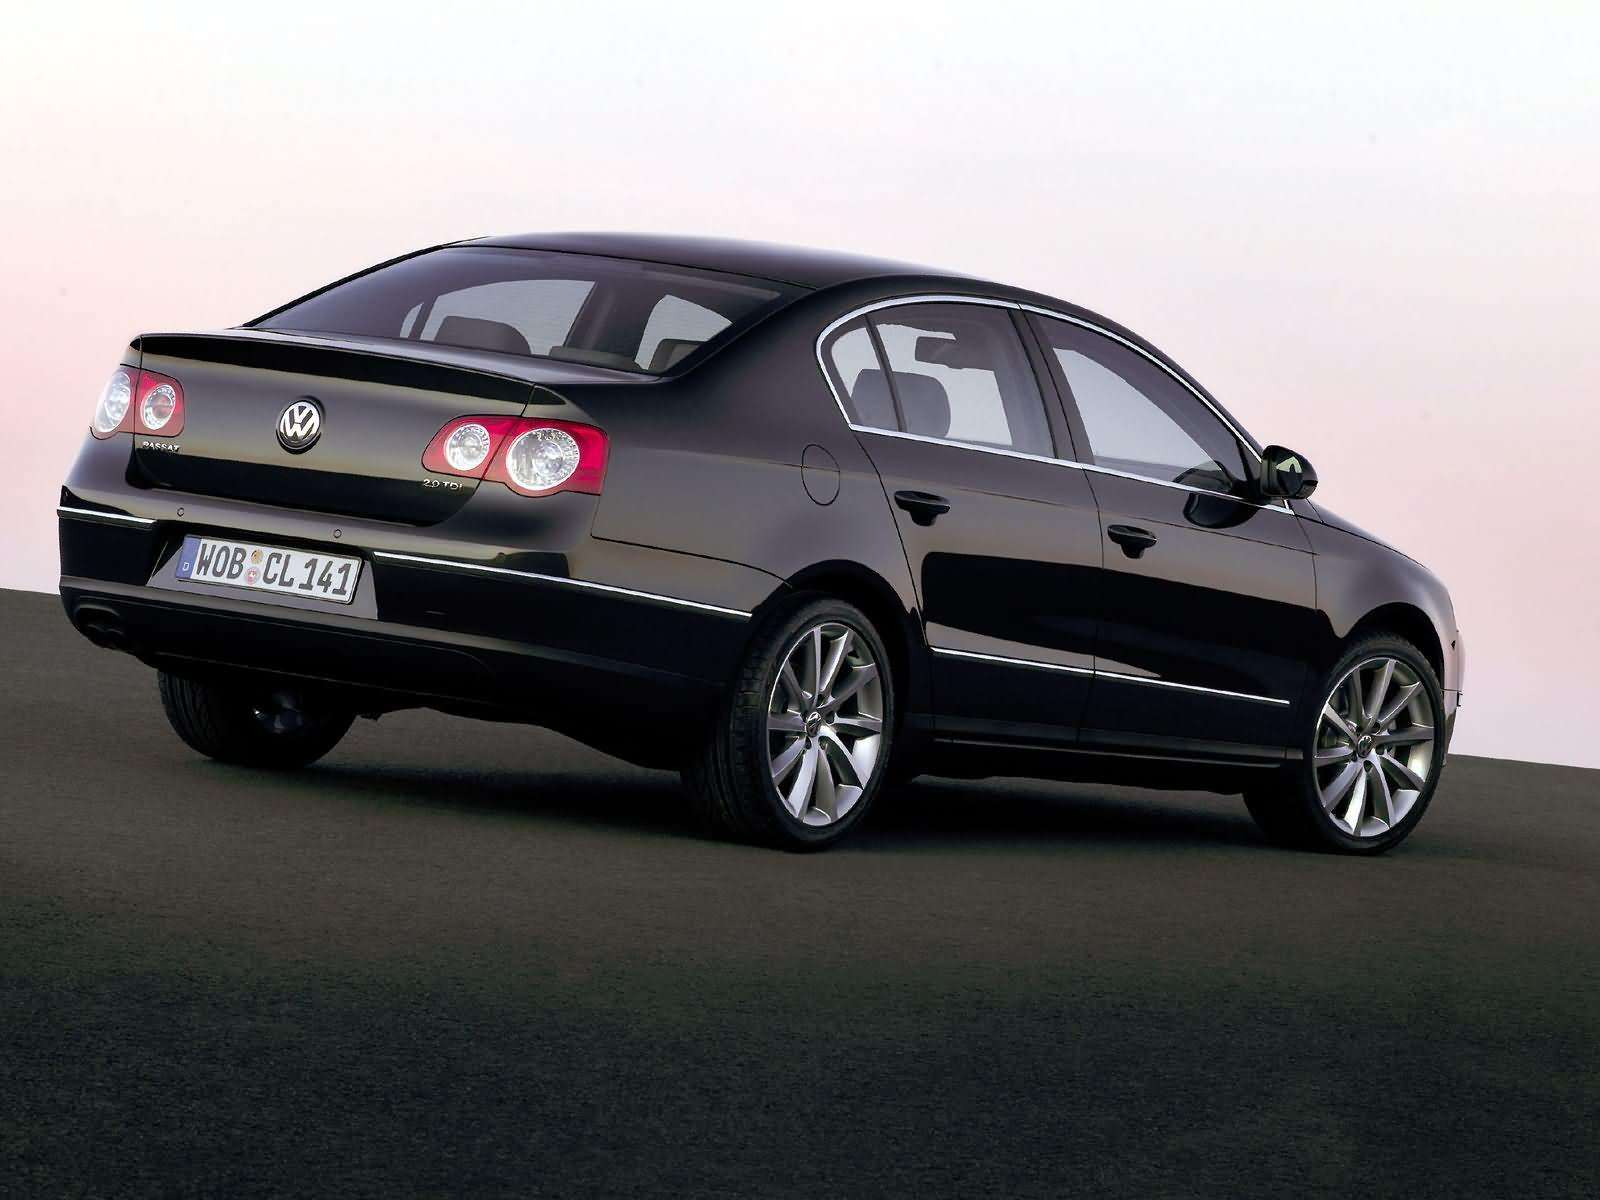 vw passat tdi technical details history photos on better parts ltd. Black Bedroom Furniture Sets. Home Design Ideas